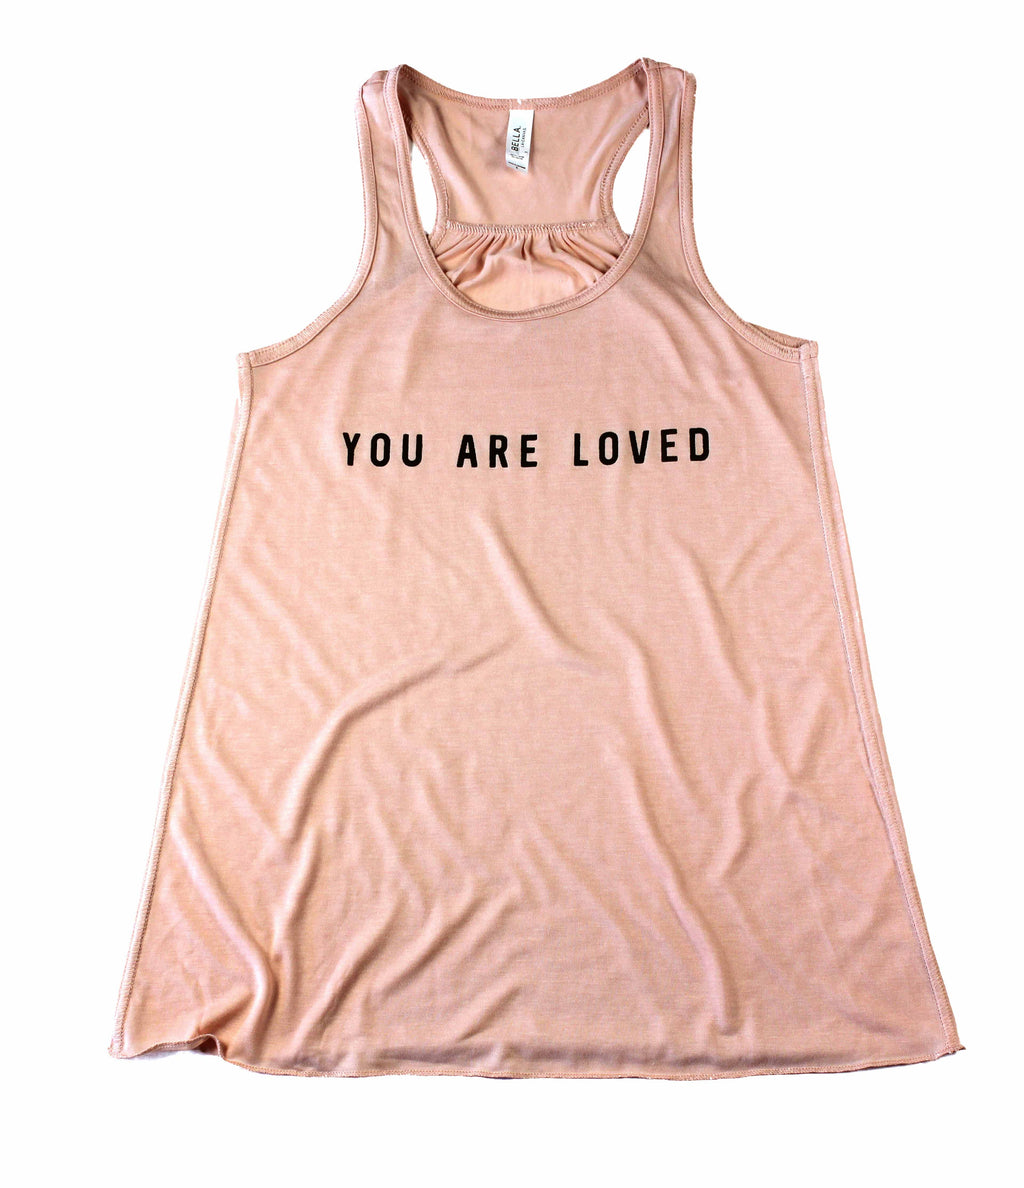 YOU ARE LOVED PEACH WOMEN'S FLOWY RACERBACK TANK